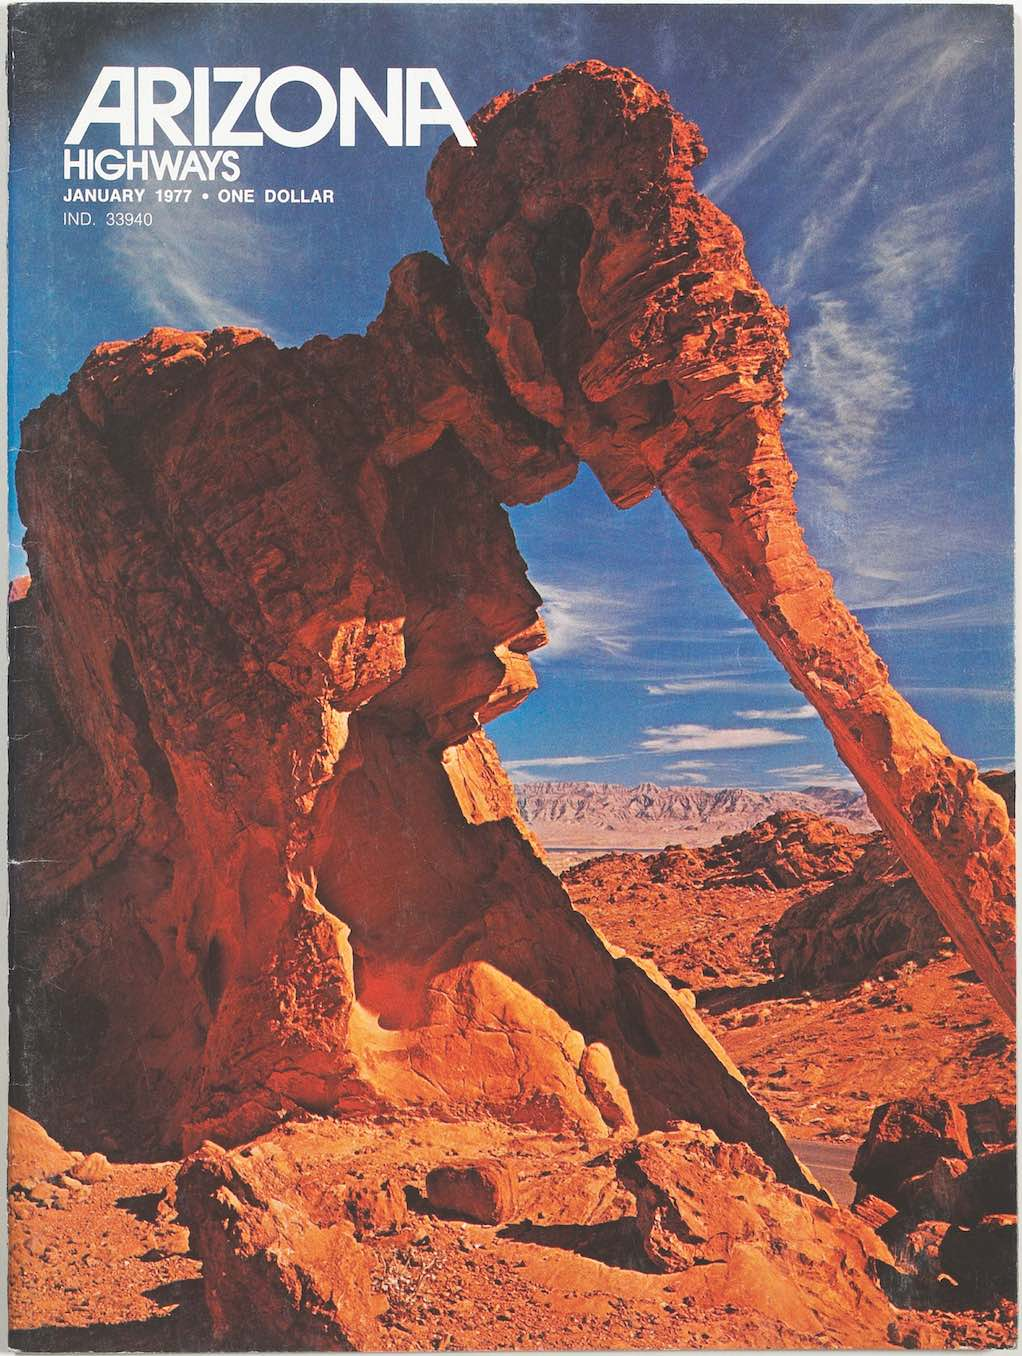 Cover of the January 1977 issue of Arizona Highways